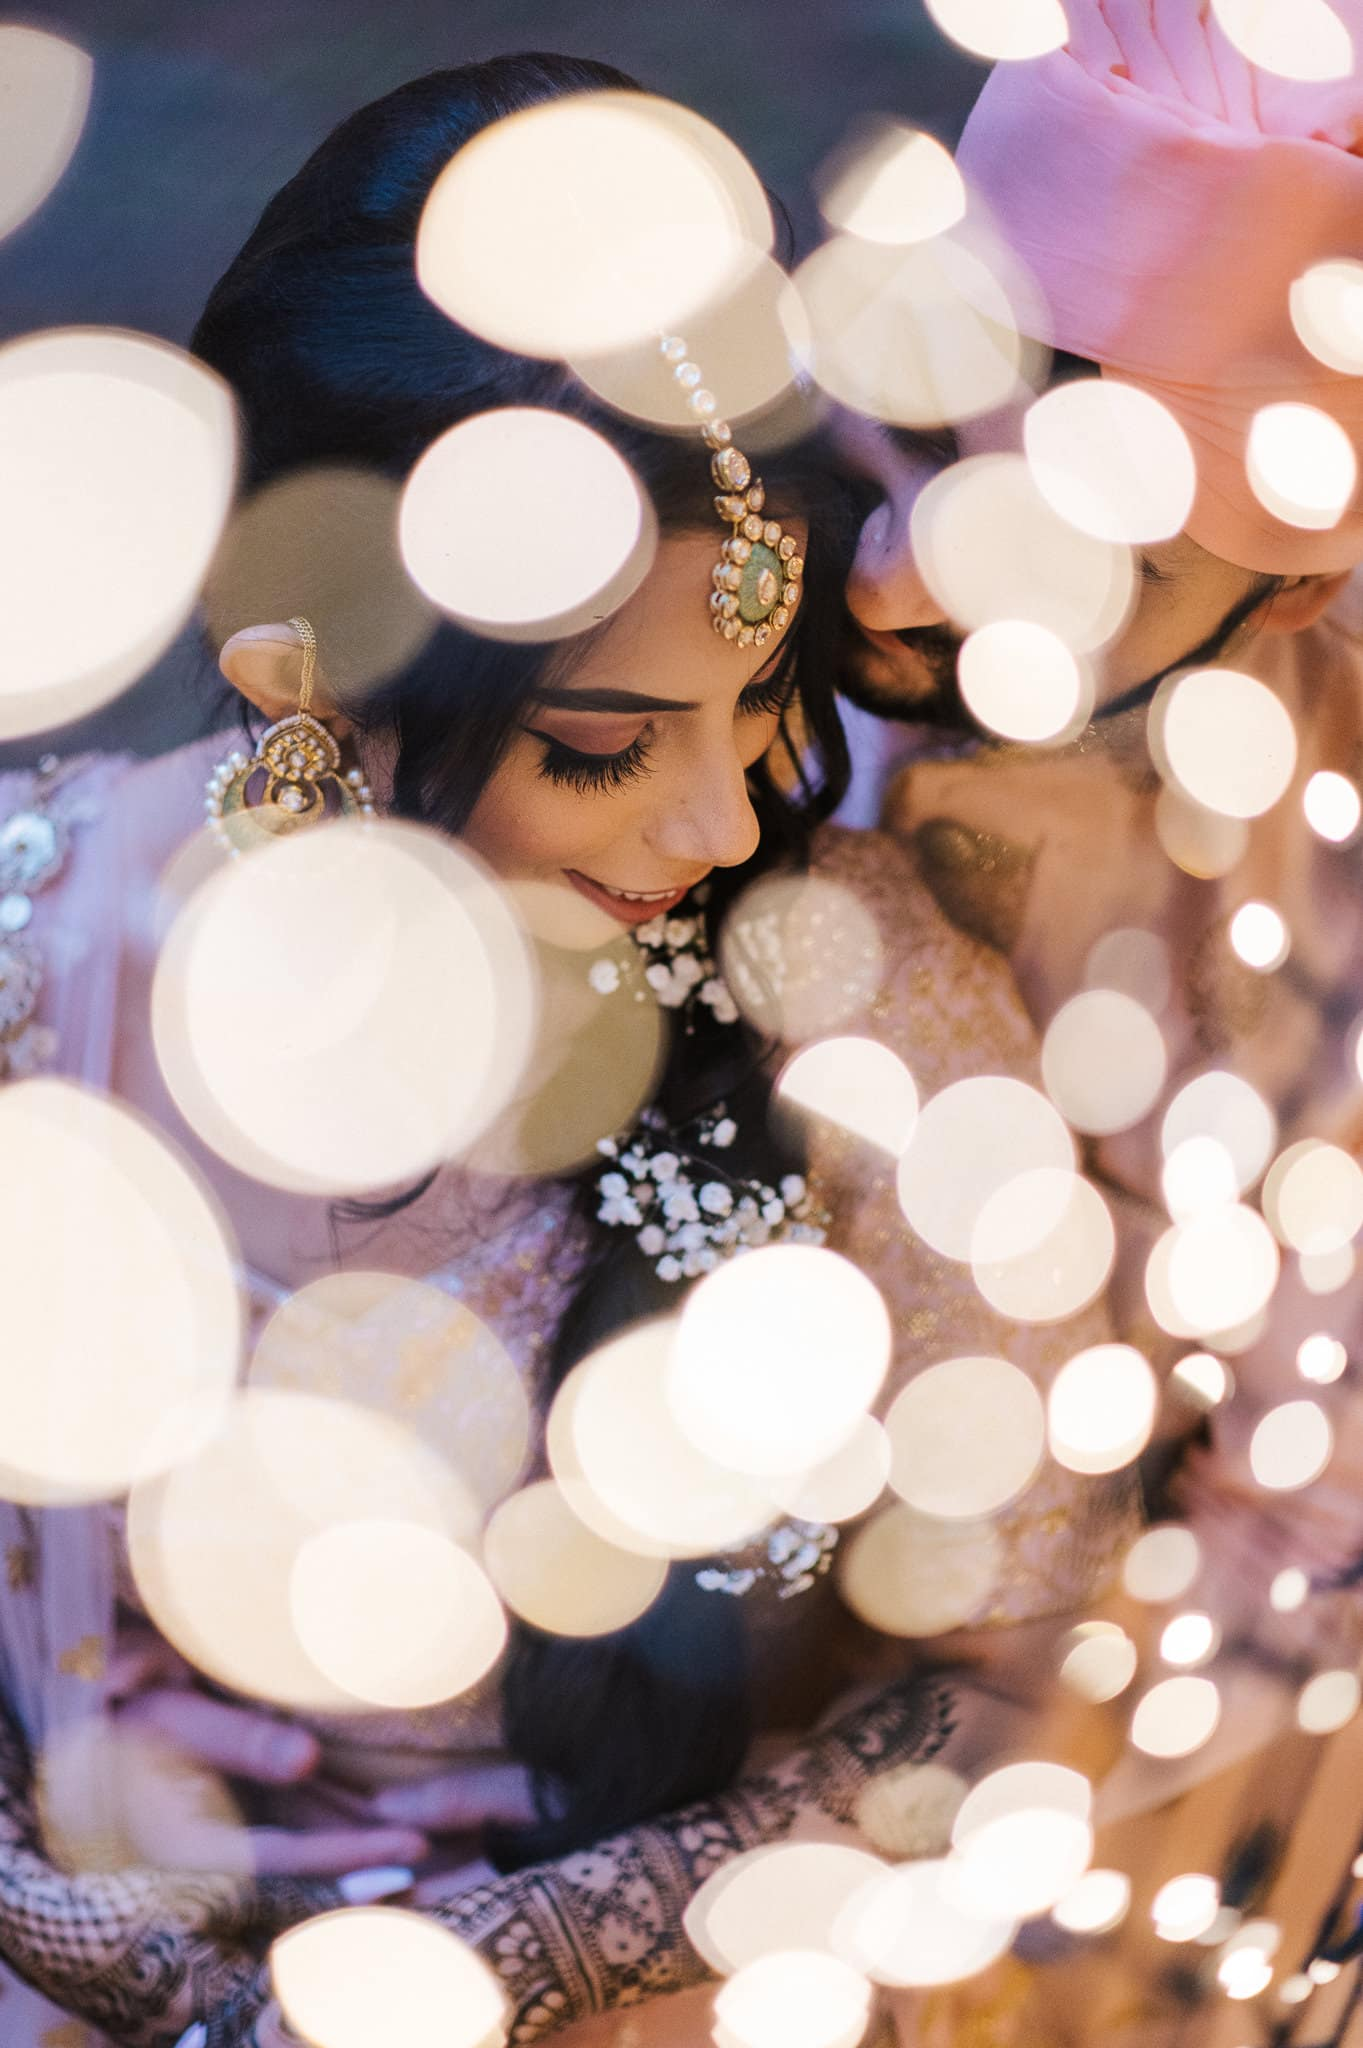 Simran and Anmol's vibrant and modern wedding began with the Mehndi and Sangeet party in Melbourne, Australia. Wedding Photography was captured by Indian wedding photographer, Bhargav Boppa. Both bride and groom were dressed in matching bridal lehenga and sherwani suits for every function.